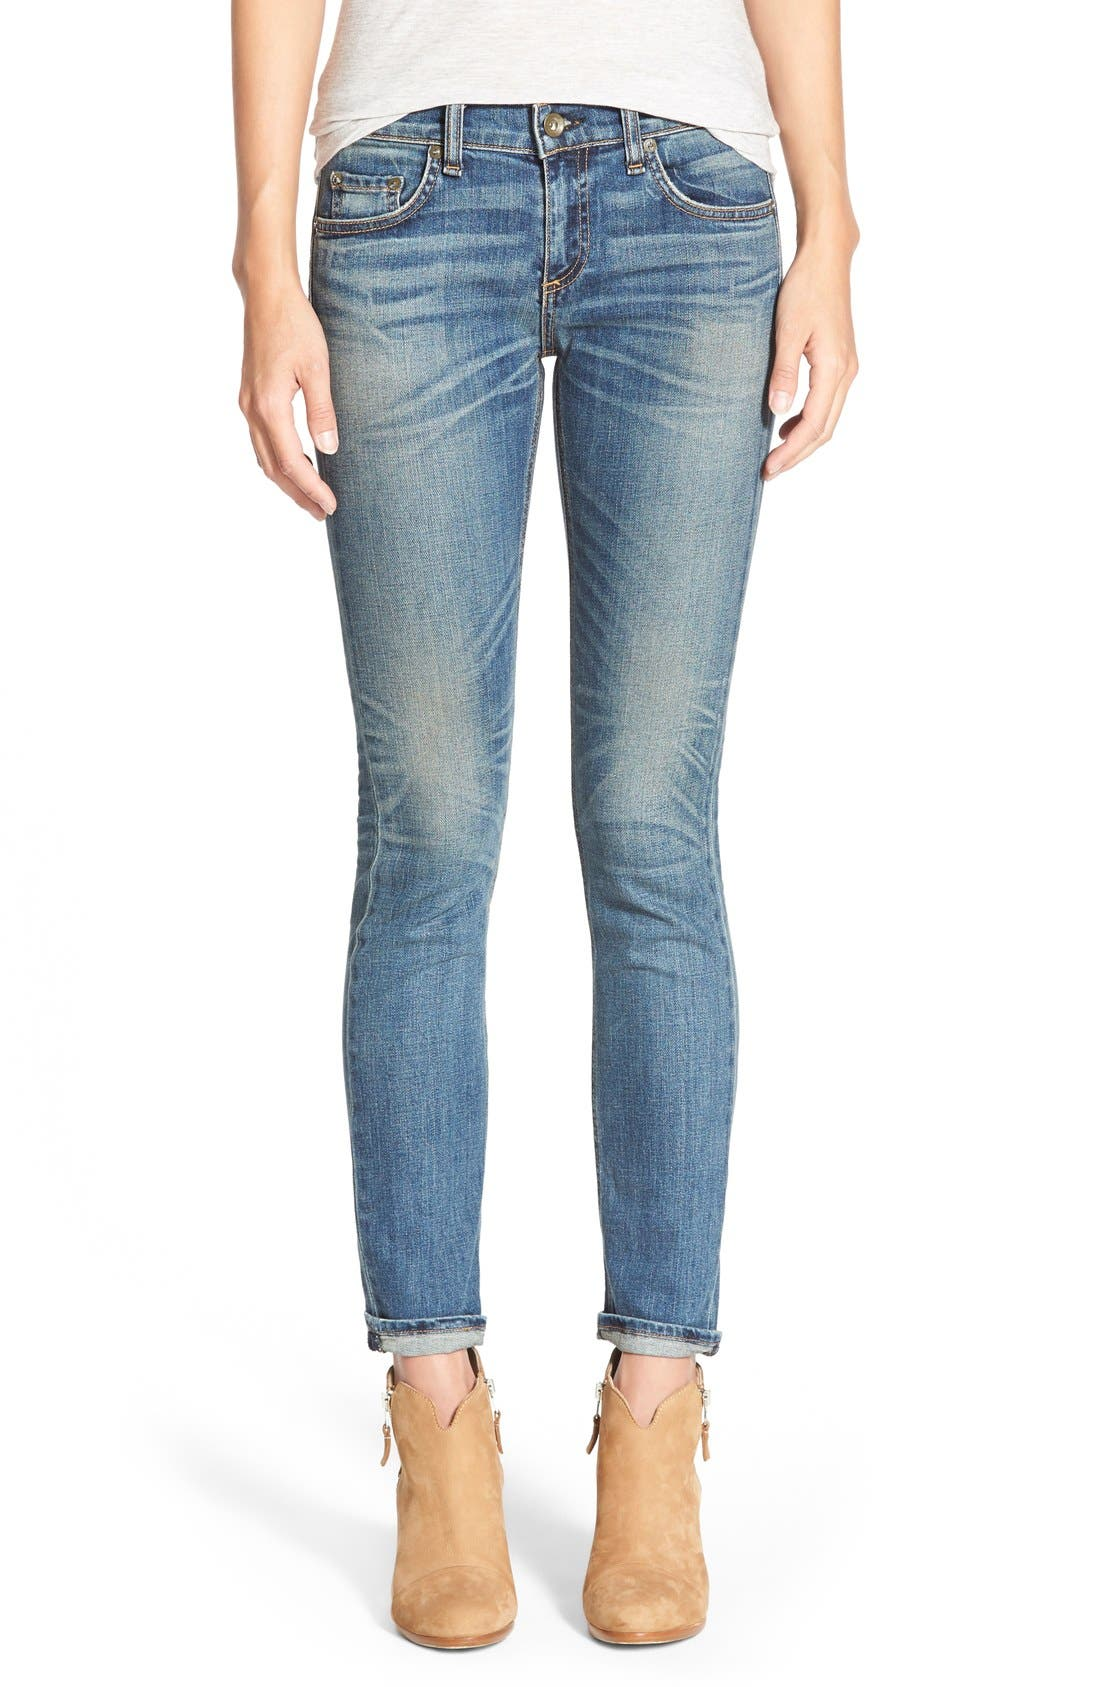 Main Image - rag & bone/JEAN 'The Dre' Slim Fit Boyfriend Jeans (Ada)